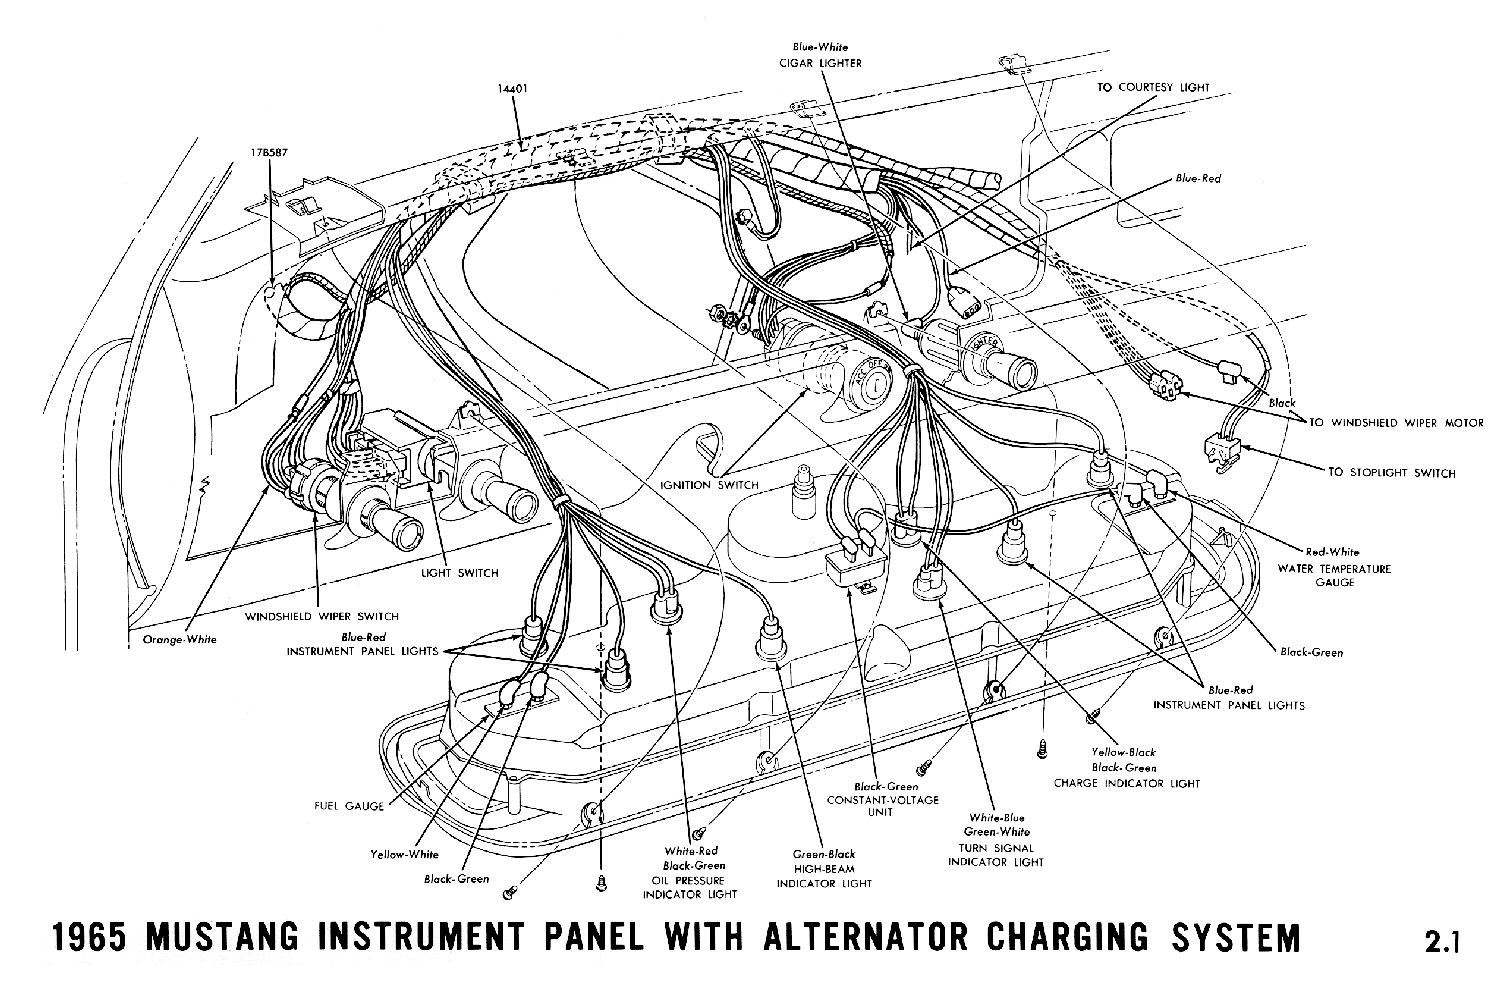 65 Mustang Wiring Harness Diagram Worksheet And 1995 Kawasaki Zx750j 1965 Diagrams Average Joe Restoration Rh Averagejoerestoration Com 1966 Ford